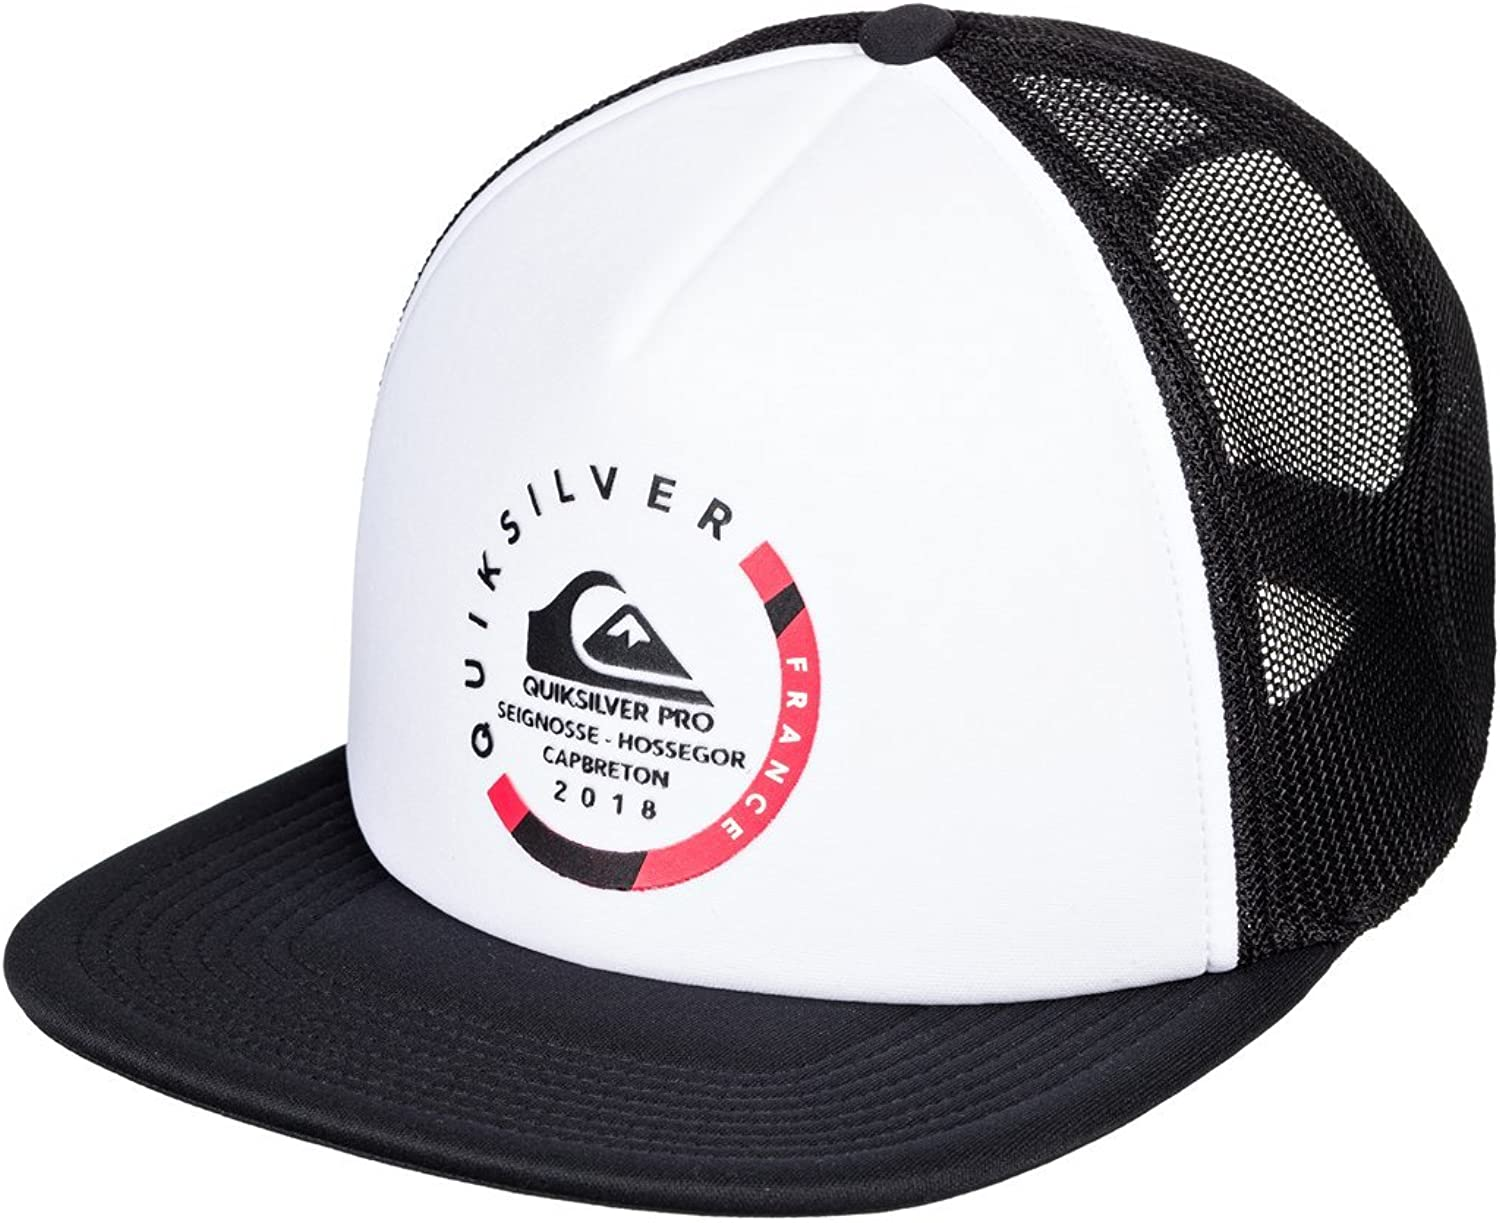 Quiksilver - Gorra Trucker - Hombre - One Size - Blanco: Amazon.es ...